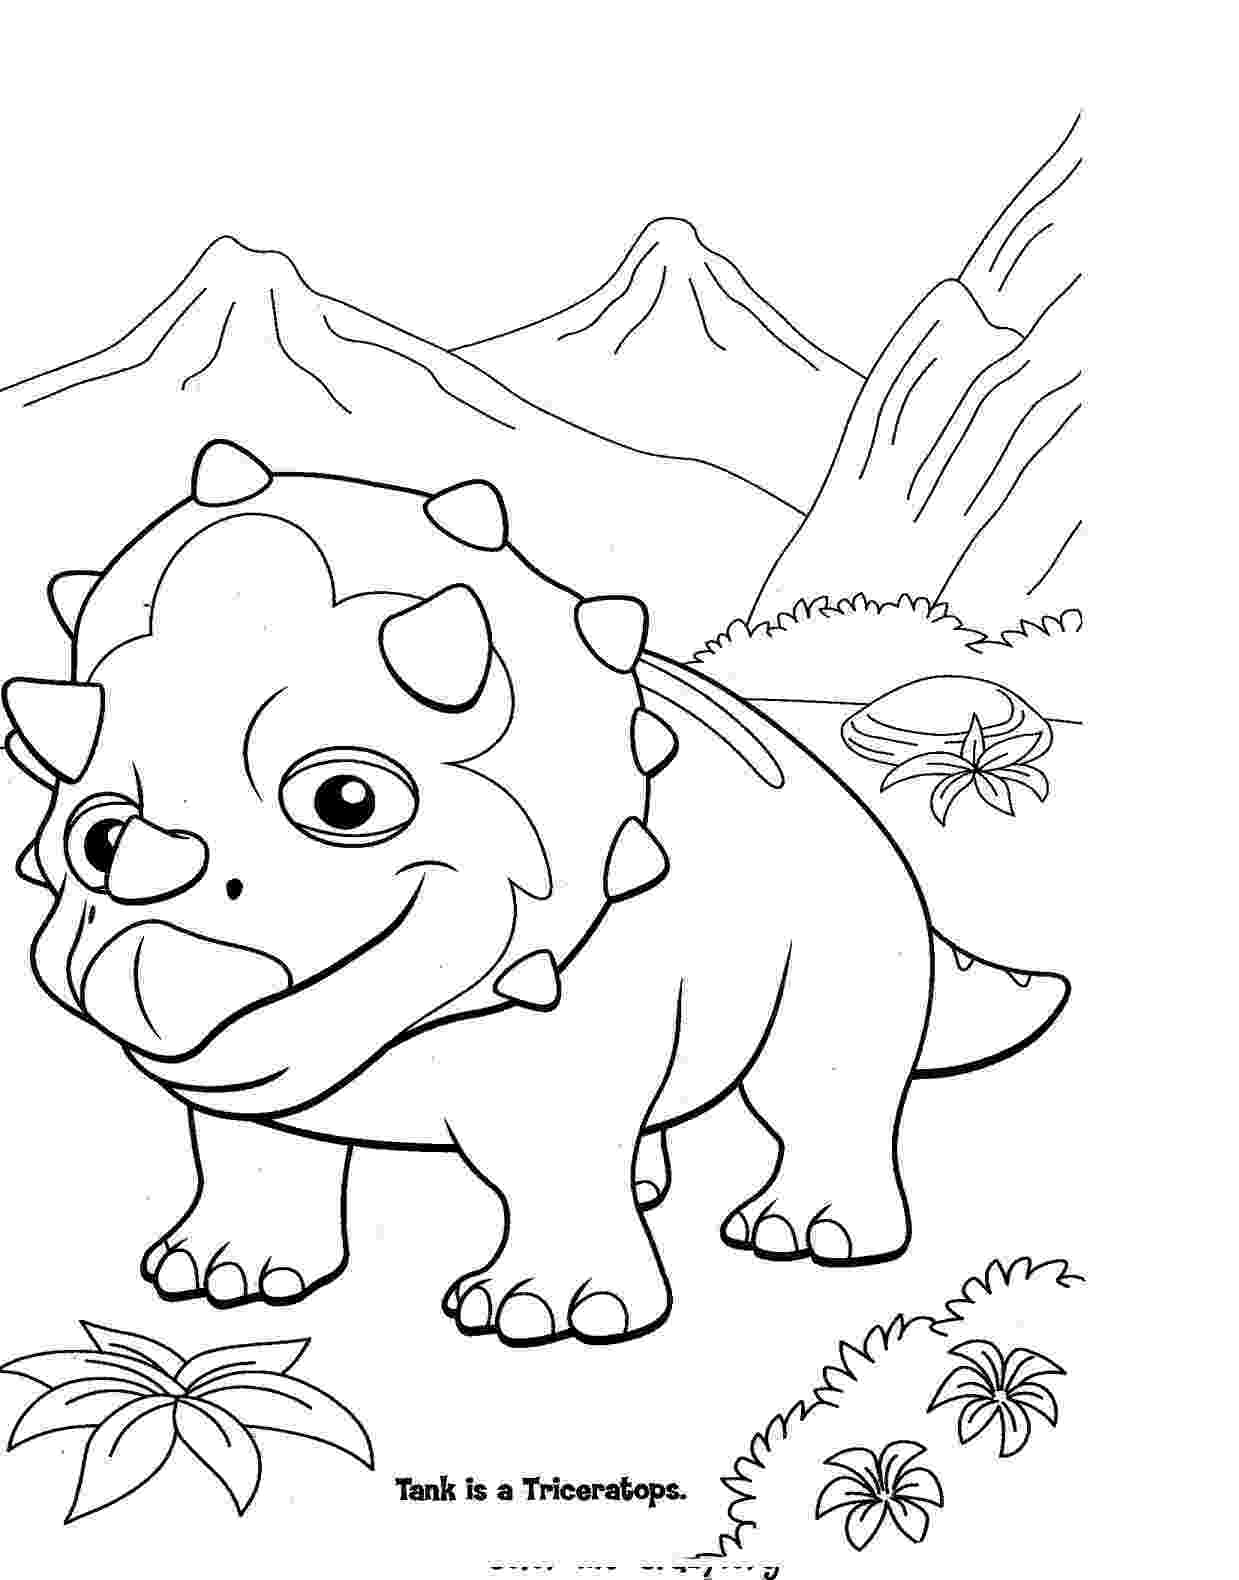 dinosaur pictures to color and print free printable dinosaur coloring pages for kids dinosaur print to and color pictures